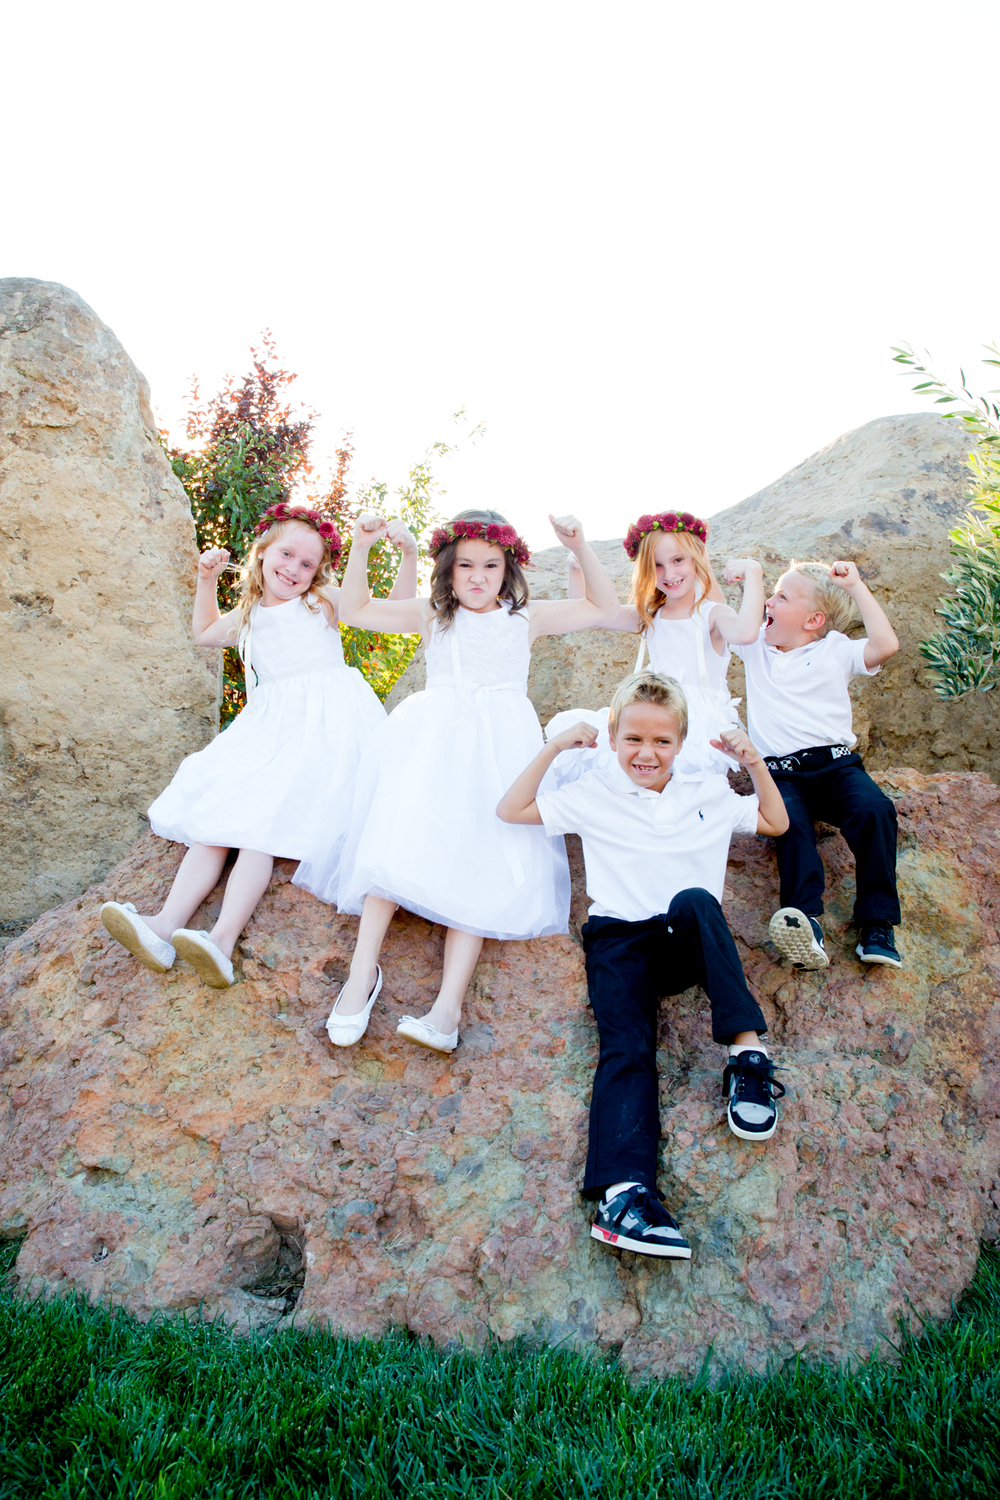 025_CarlyGaebe_SteadfastStudio_WeddingPhotography_Malibu_LosAngeles_LA_California_Winery_Hilltop_CieloFarms_Kids_Flowergirls_Playful_Vineyard.jpg